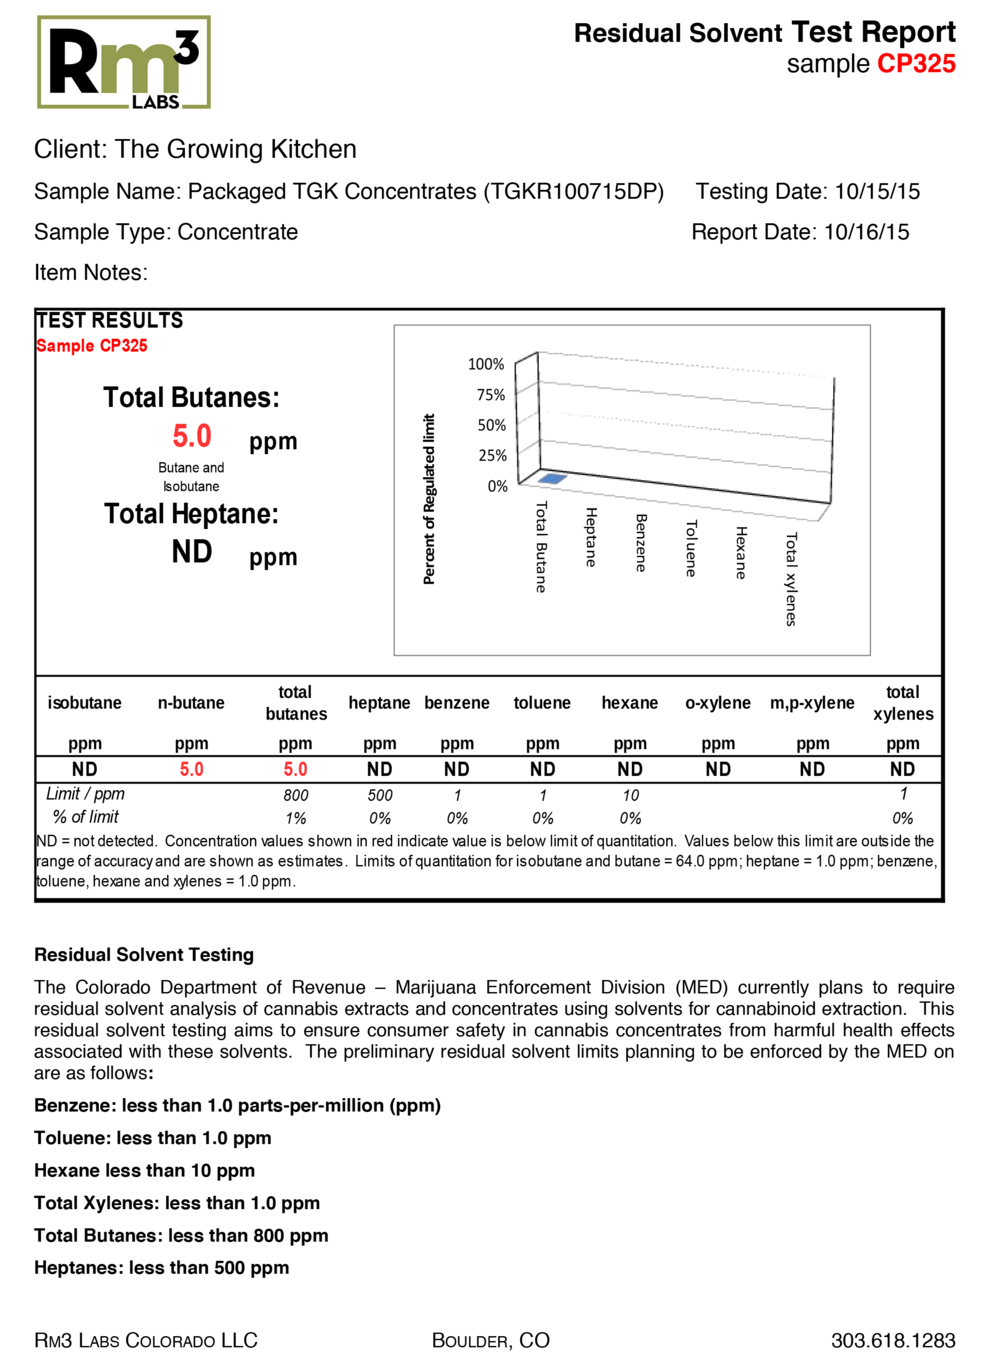 RM3 Labs Residual Solvent Report_The Growing Kitchen_101615_Packaged TGK Concentrates (TGKR100715DP).png